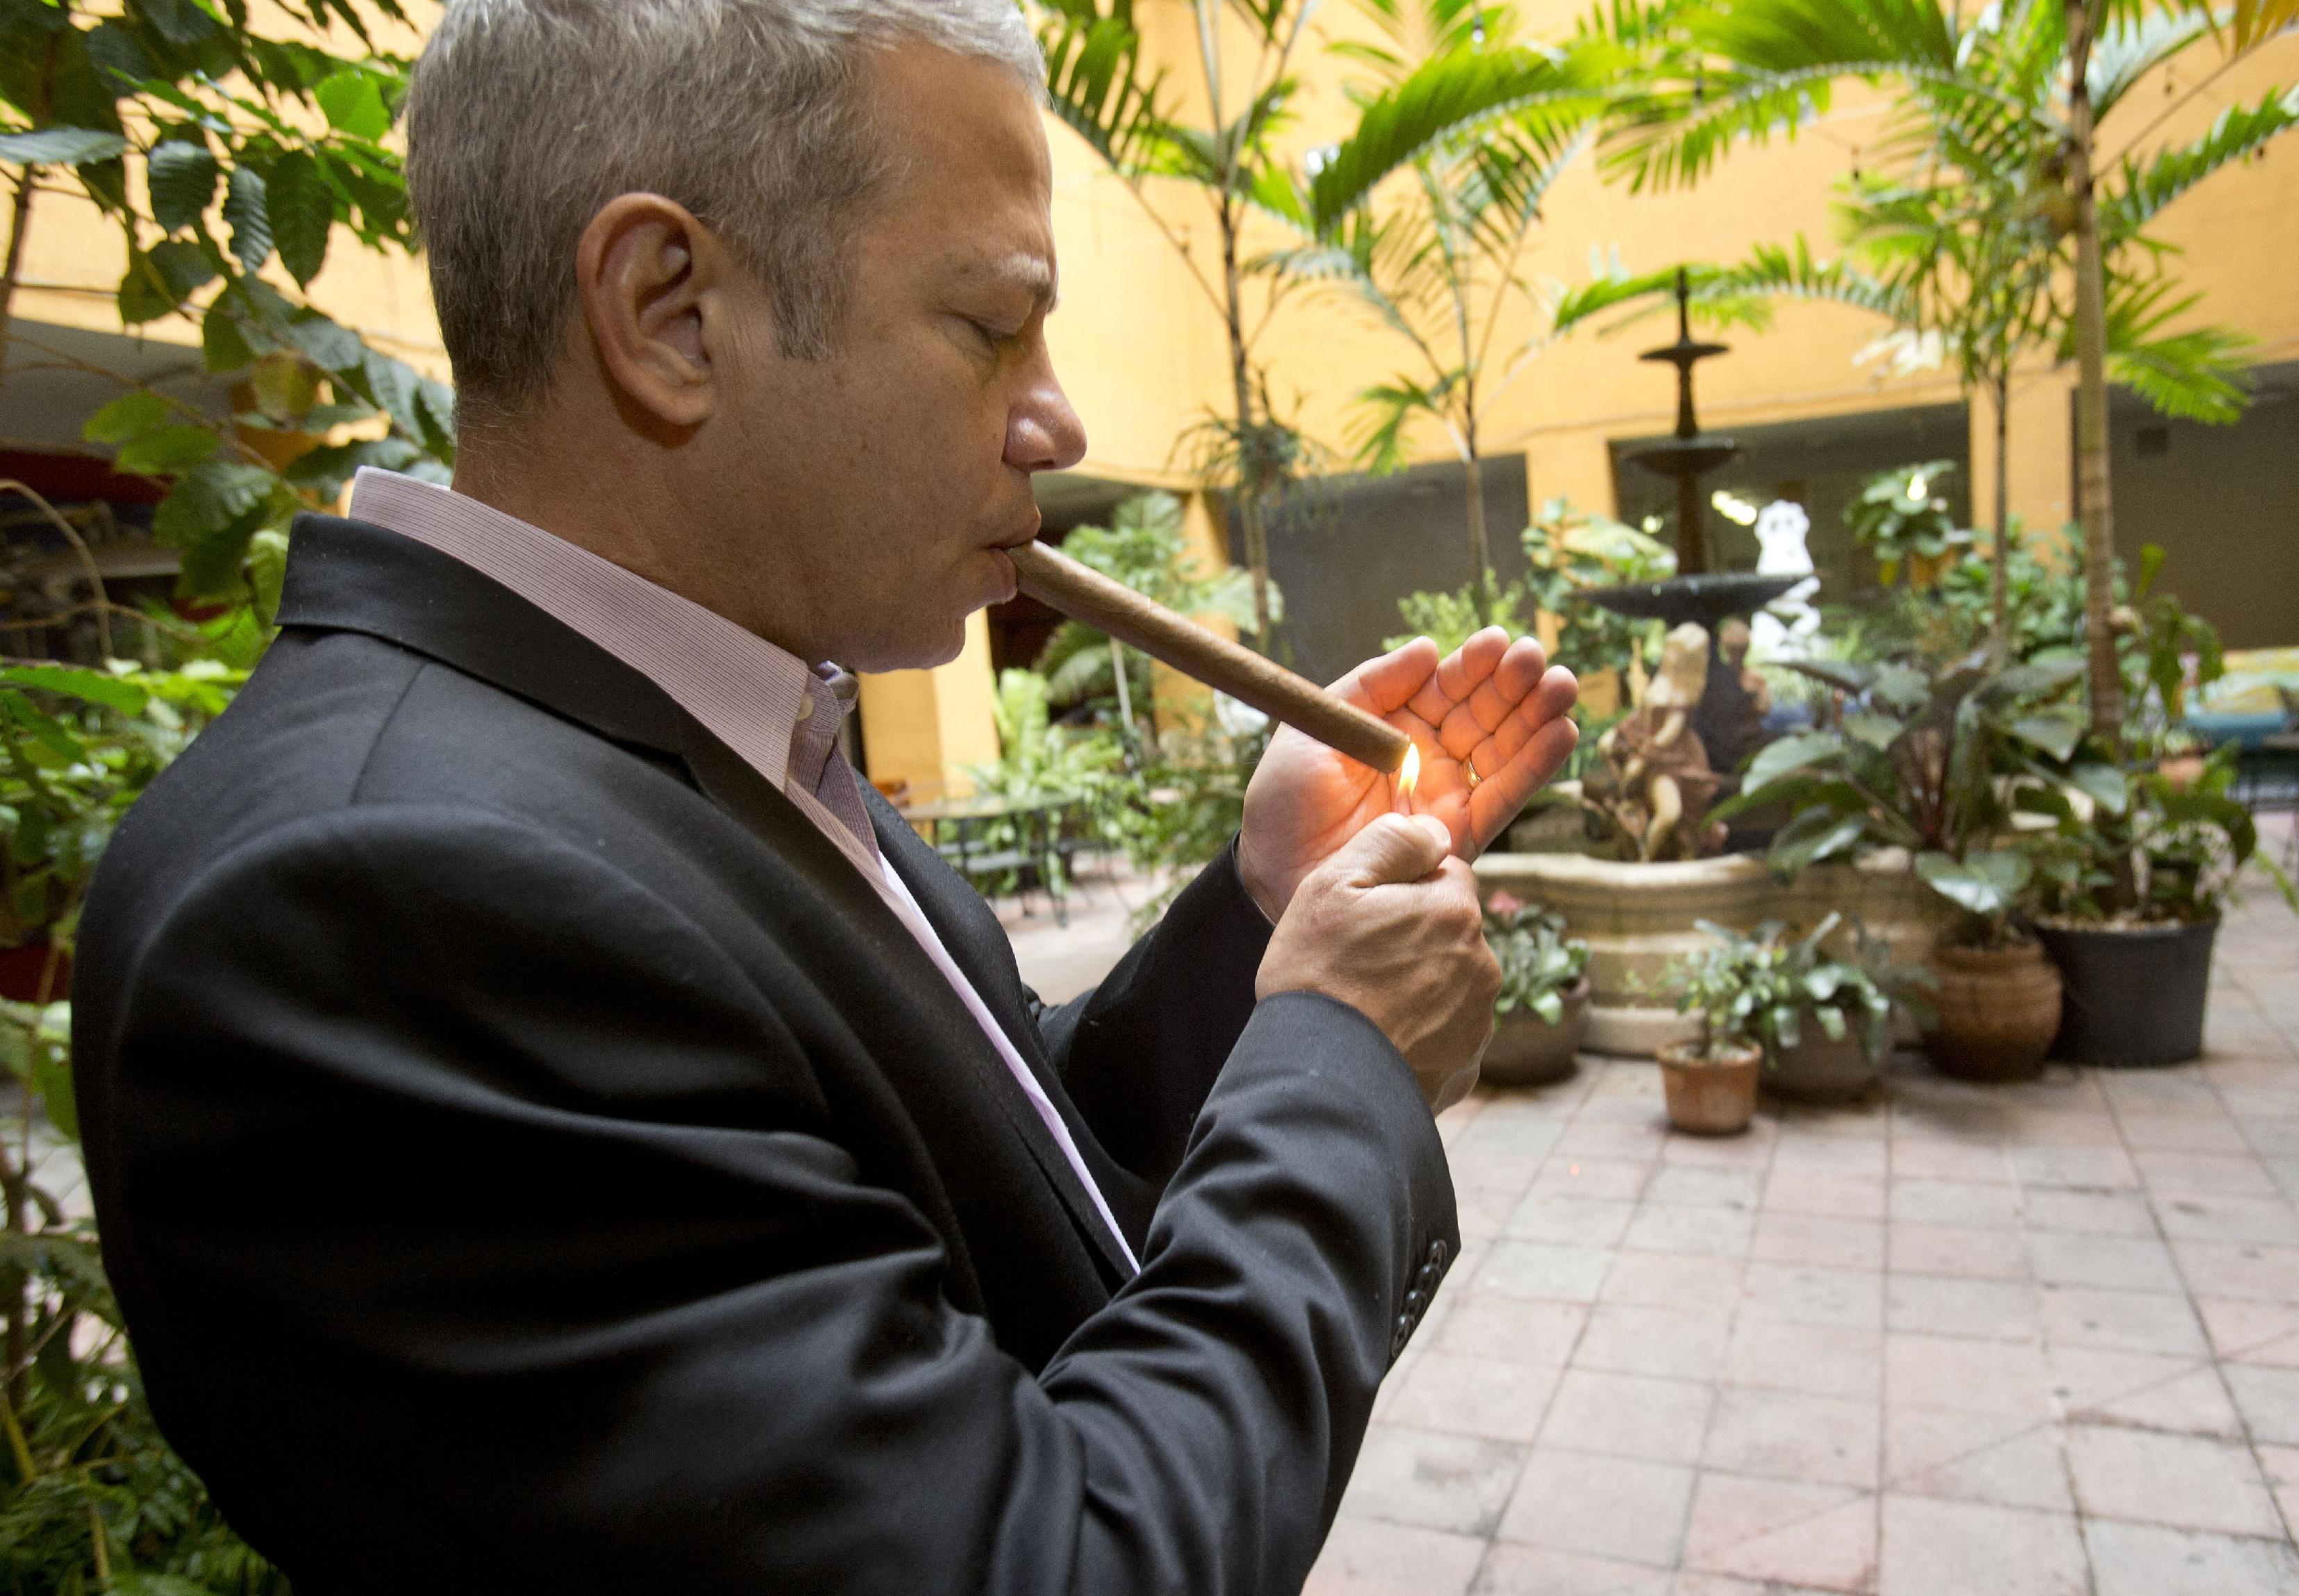 Cuban cigar boom? Not yet, stores and customers say